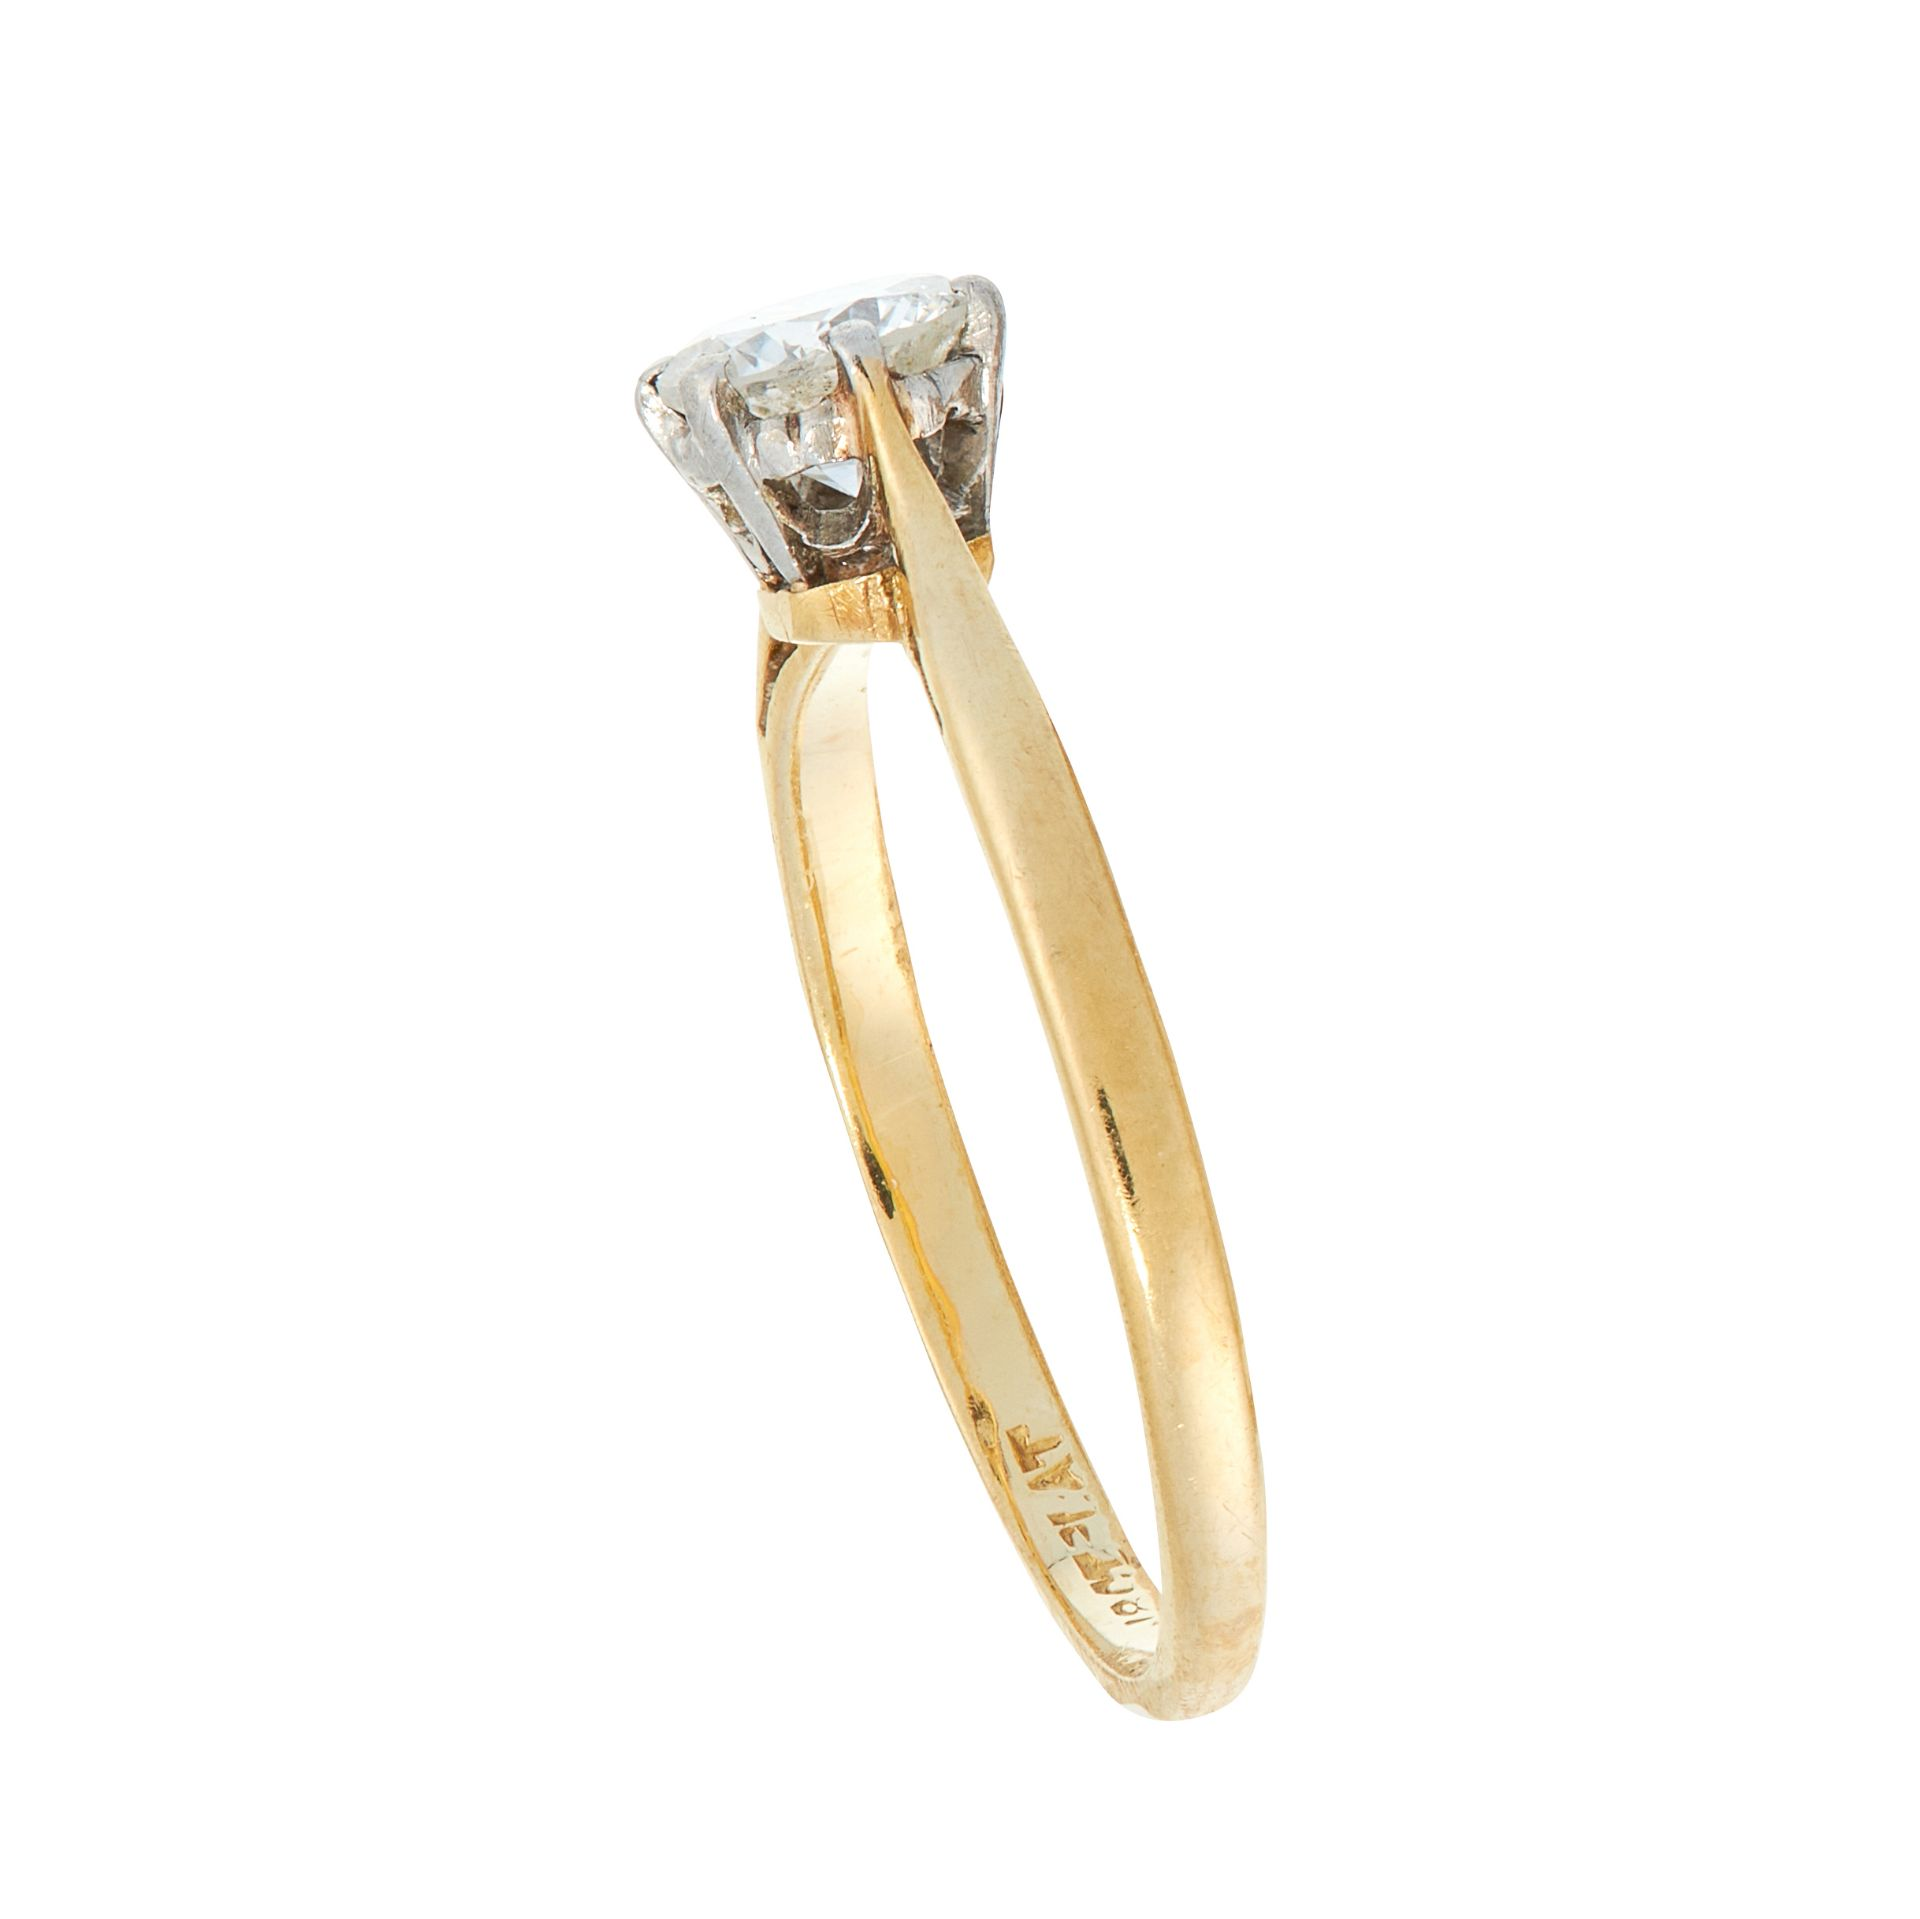 A SOLITAIRE DIAMOND ENGAGEMENT RING in 18ct yellow gold and platinum, set with a round cut diamond - Image 2 of 2